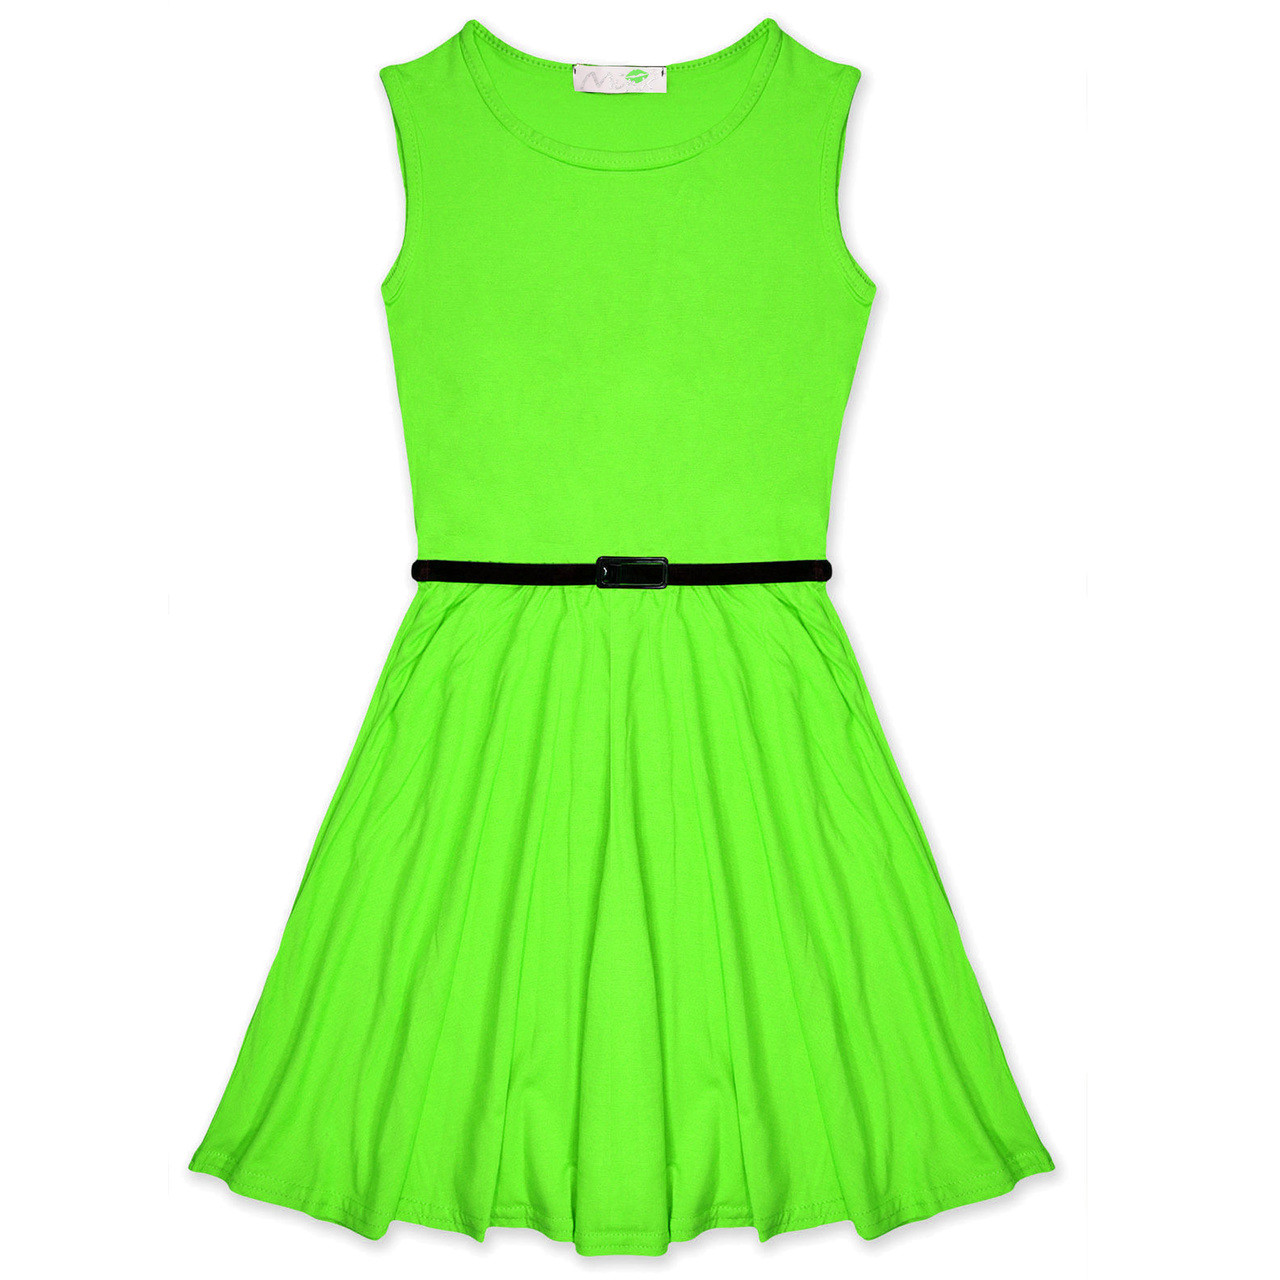 435d2411bf0e Minx Girls New Plain Fitted Flared Belt Dress Kids Plain Sleeveless Girls Skater  Dress Neon Green. Loading zoom